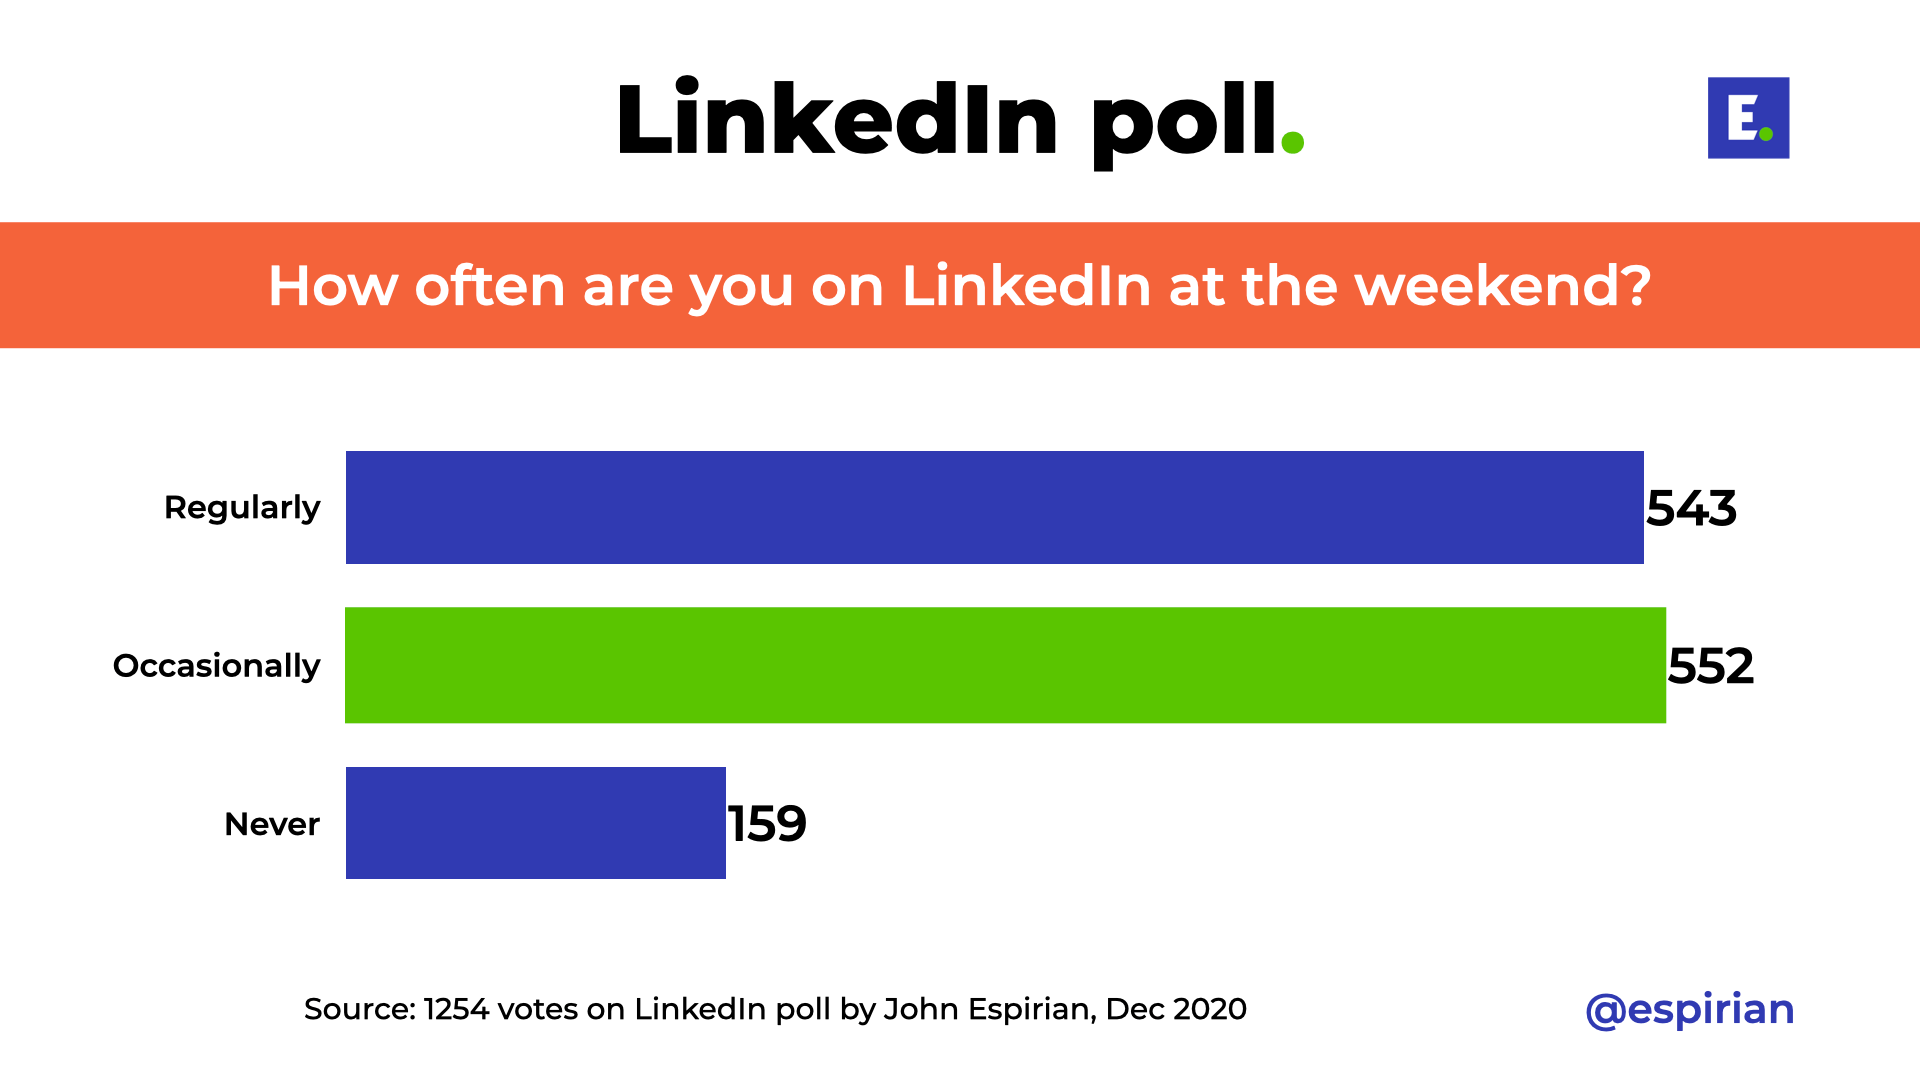 LinkedIn poll result about weekend posting